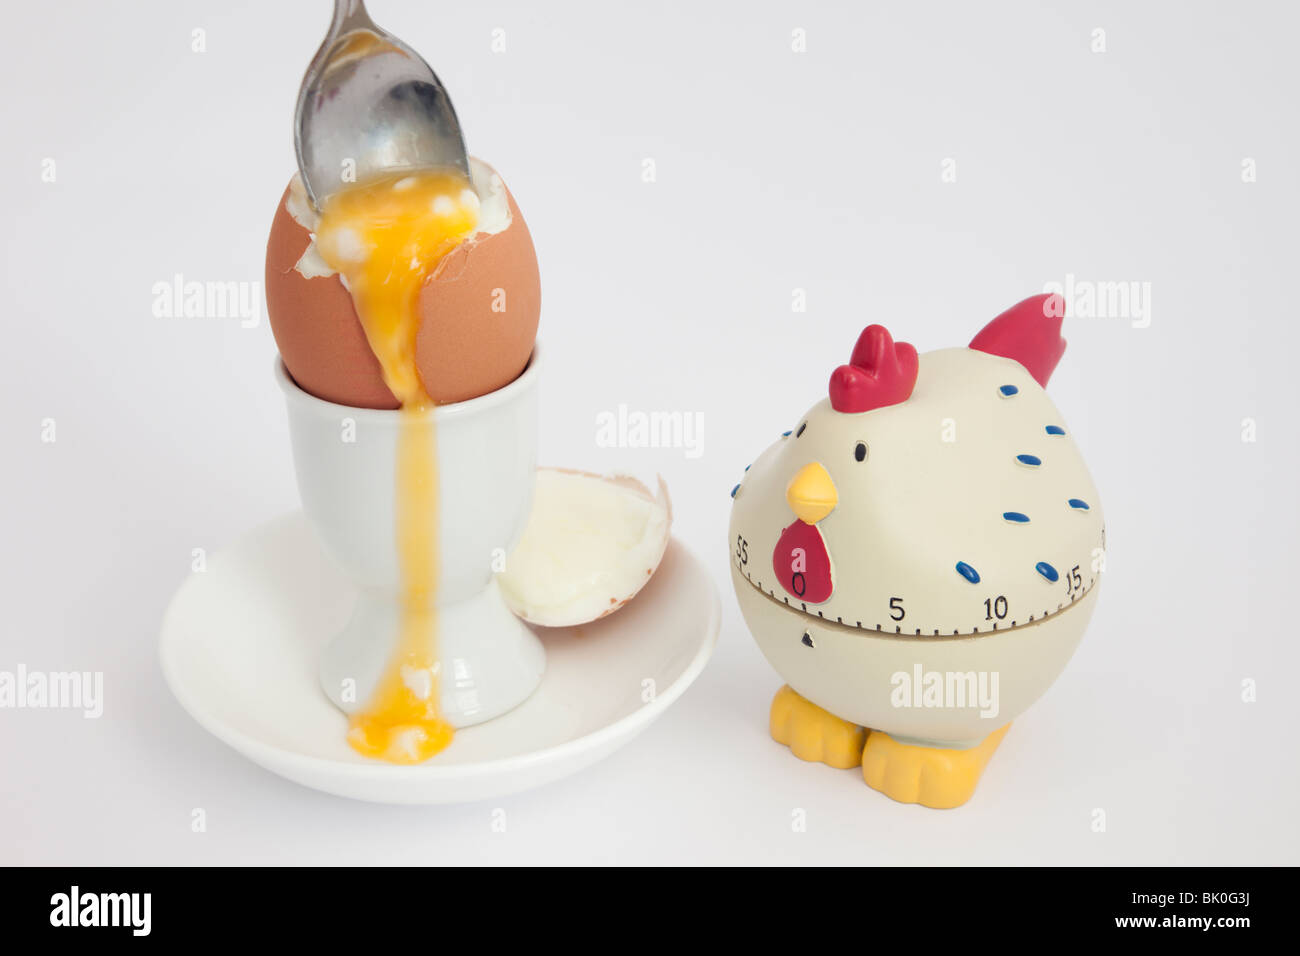 Spoon in an open soft boiled egg with runny yolk in an egg cup with a chicken egg timer on a white background Stock Photo